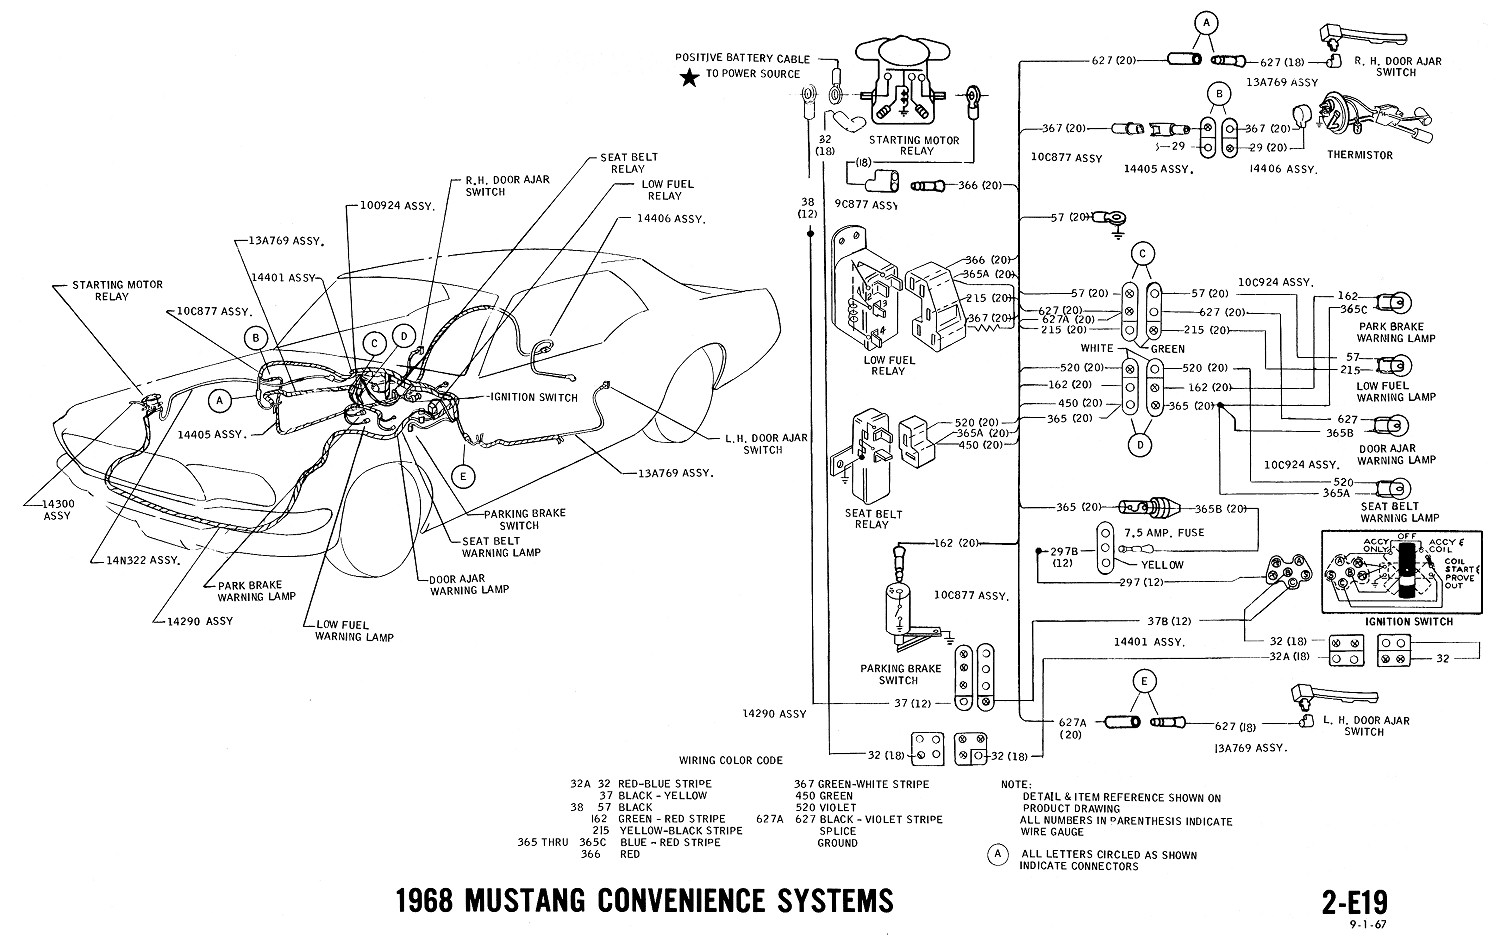 1967 Mustang Wiper Wiring Diagram Free For You Gtx 1966 Radio Detailed Rh 9 2 Gastspiel Gerhartz De Ford Motor